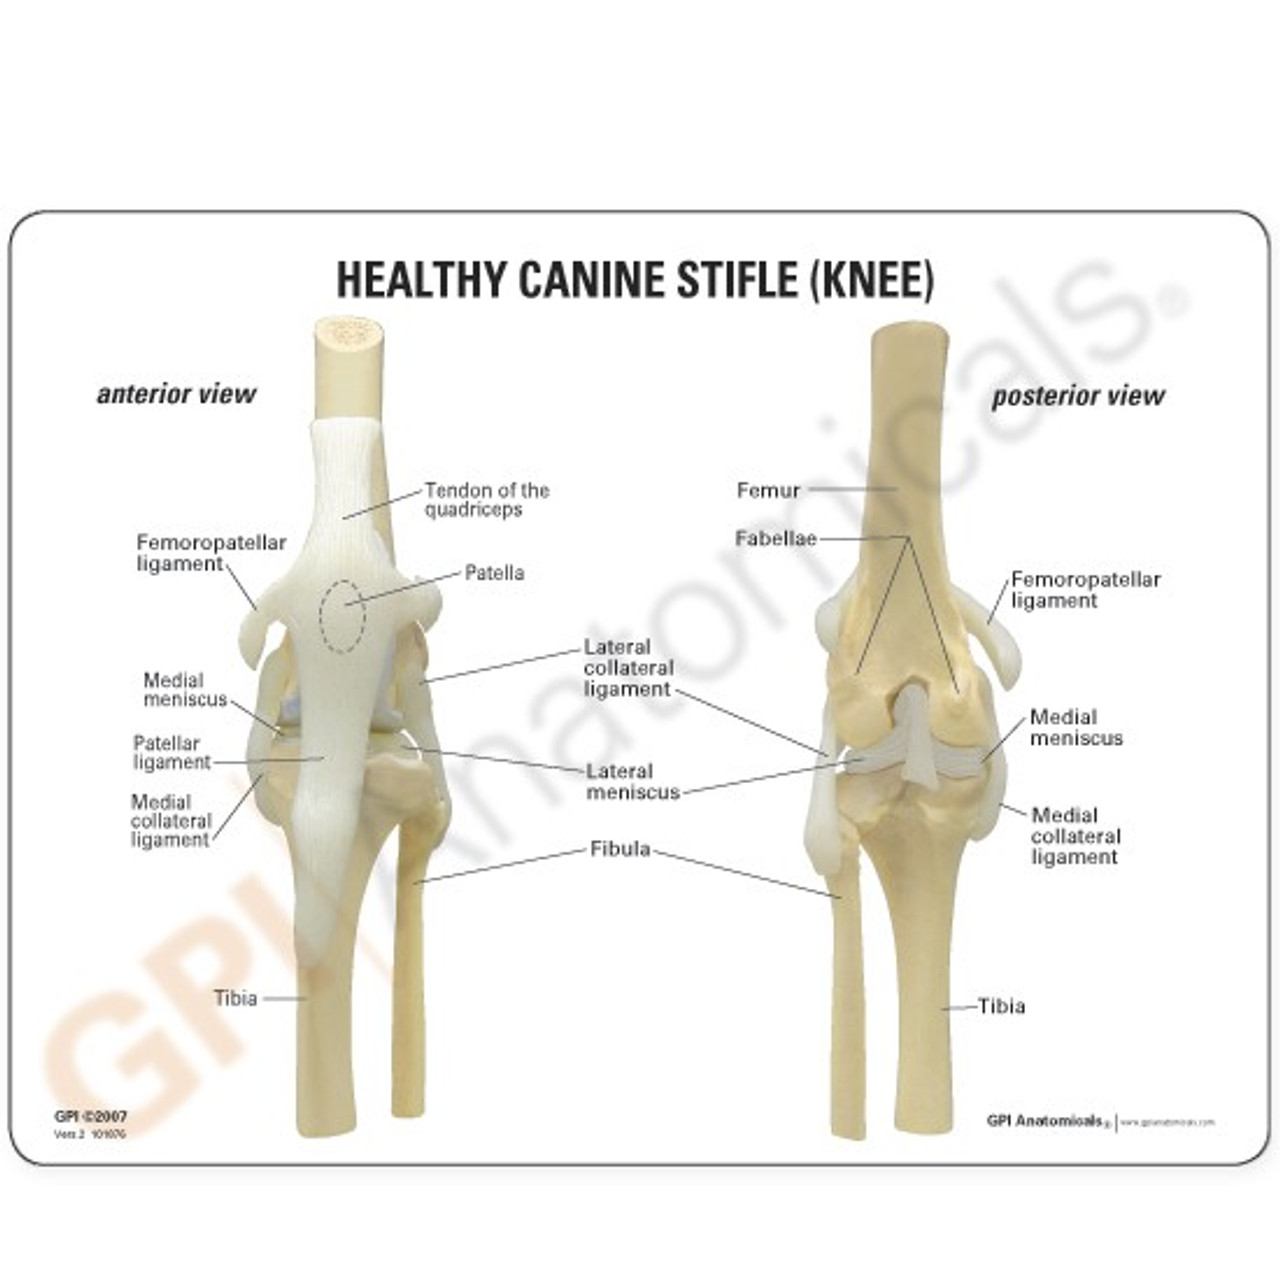 Canine Knee Model - Description Card